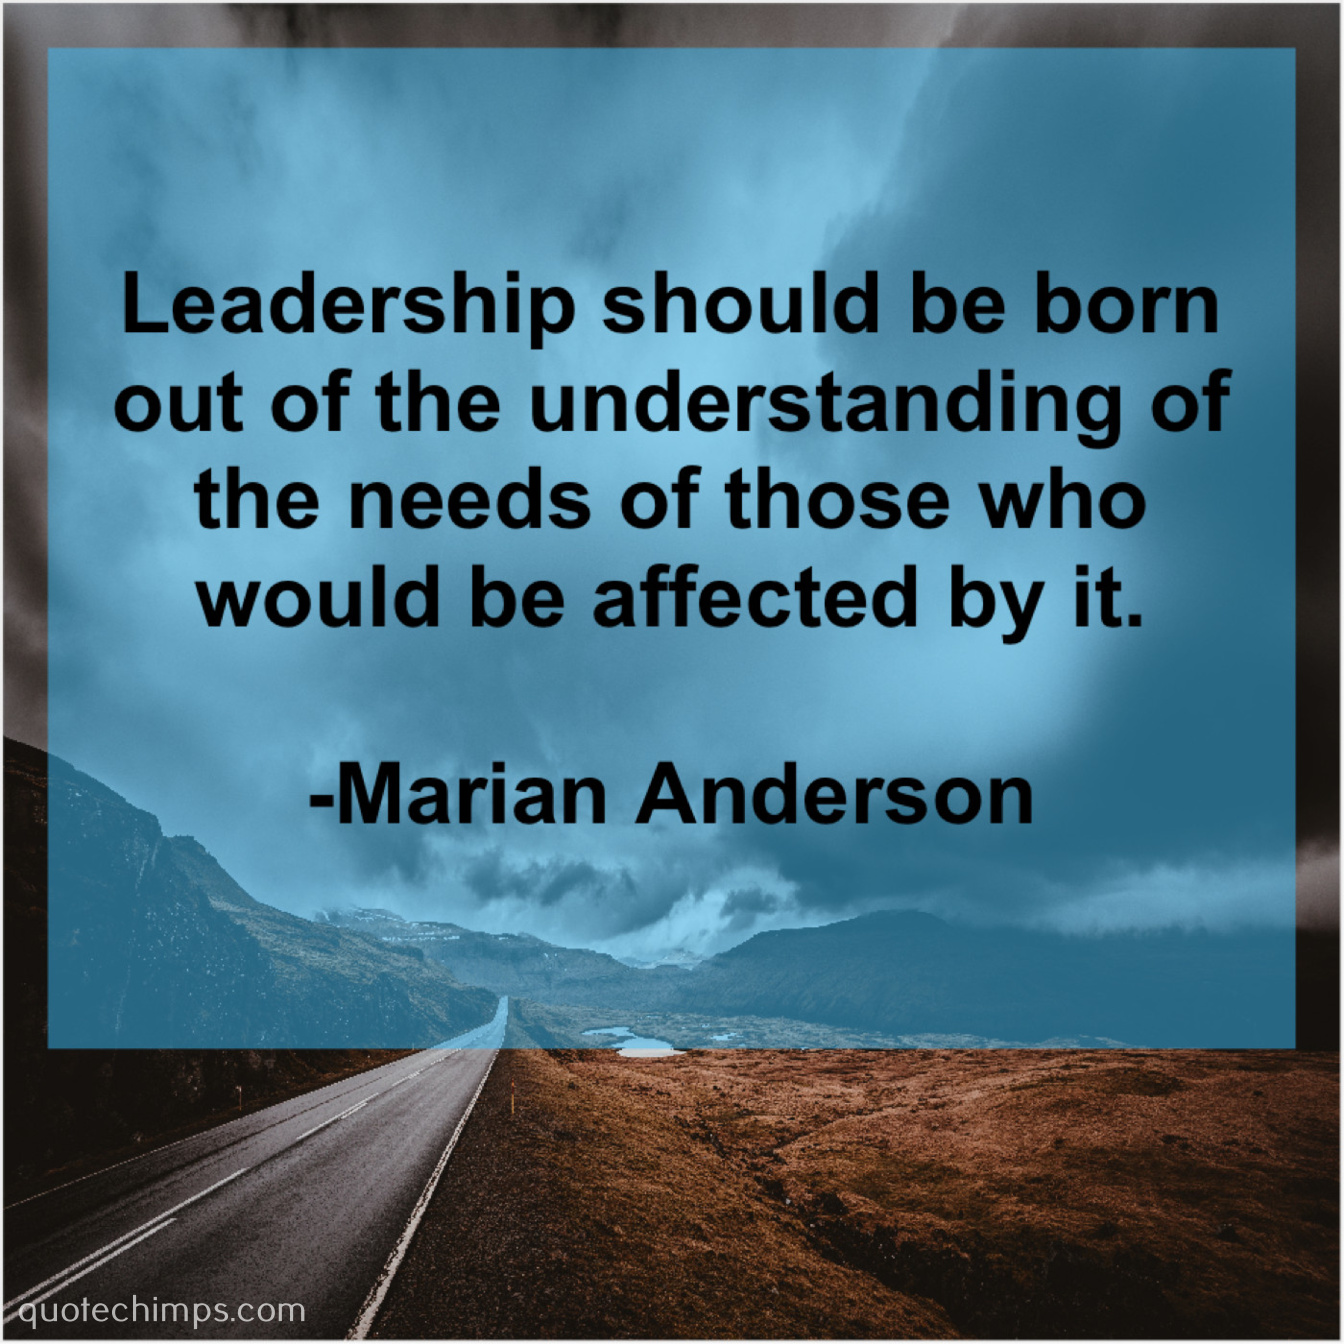 Marian Anderson Leadership Should Be Born Out